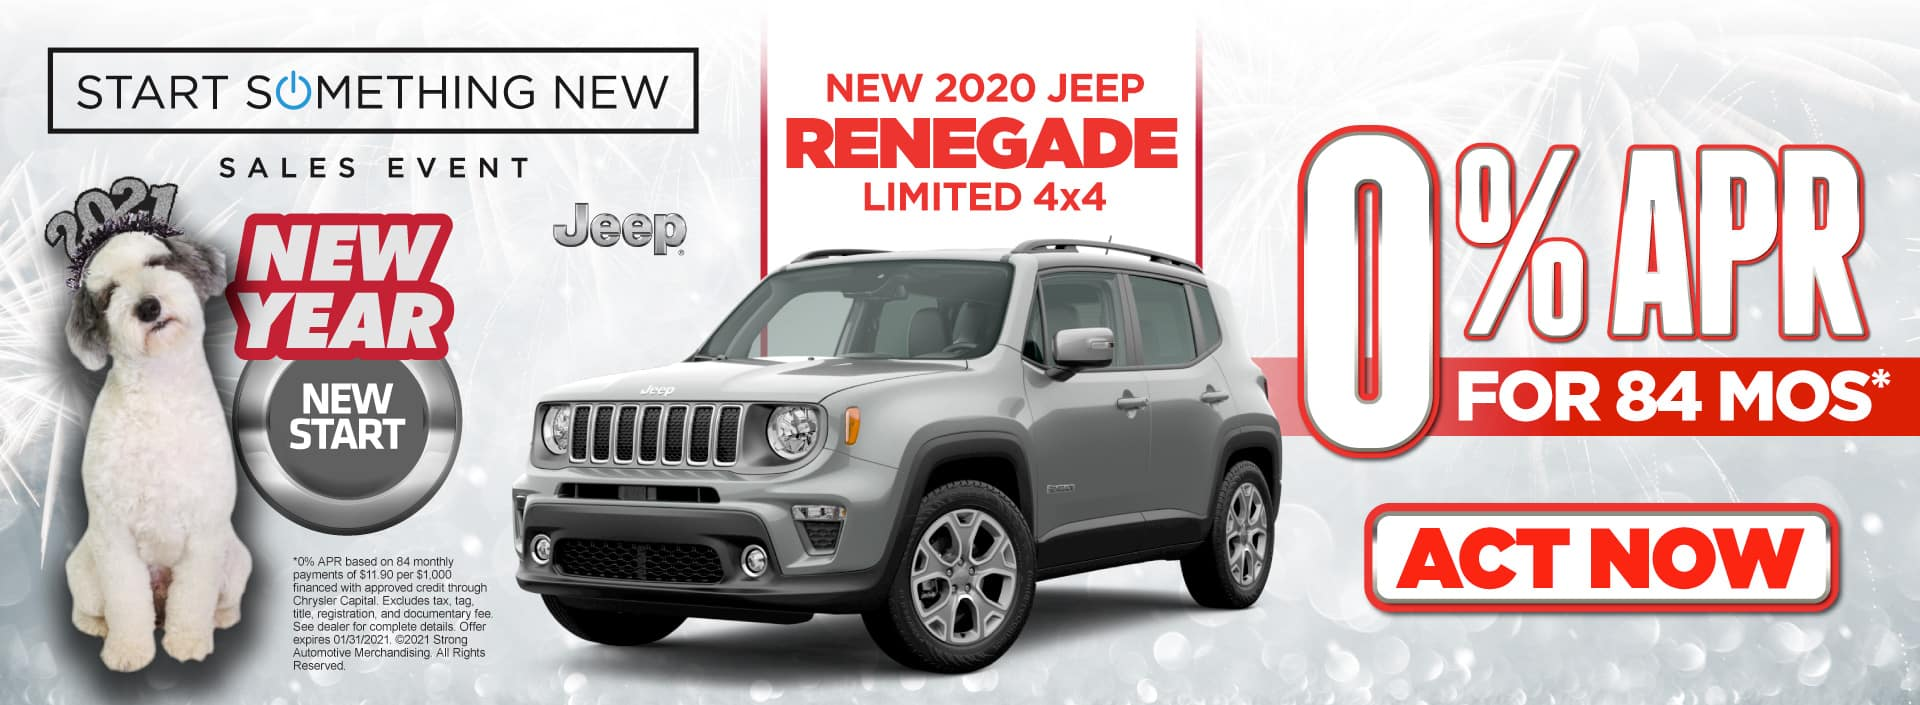 New 2020 Jeep Renegade - 0% APR for 84 months - Act now